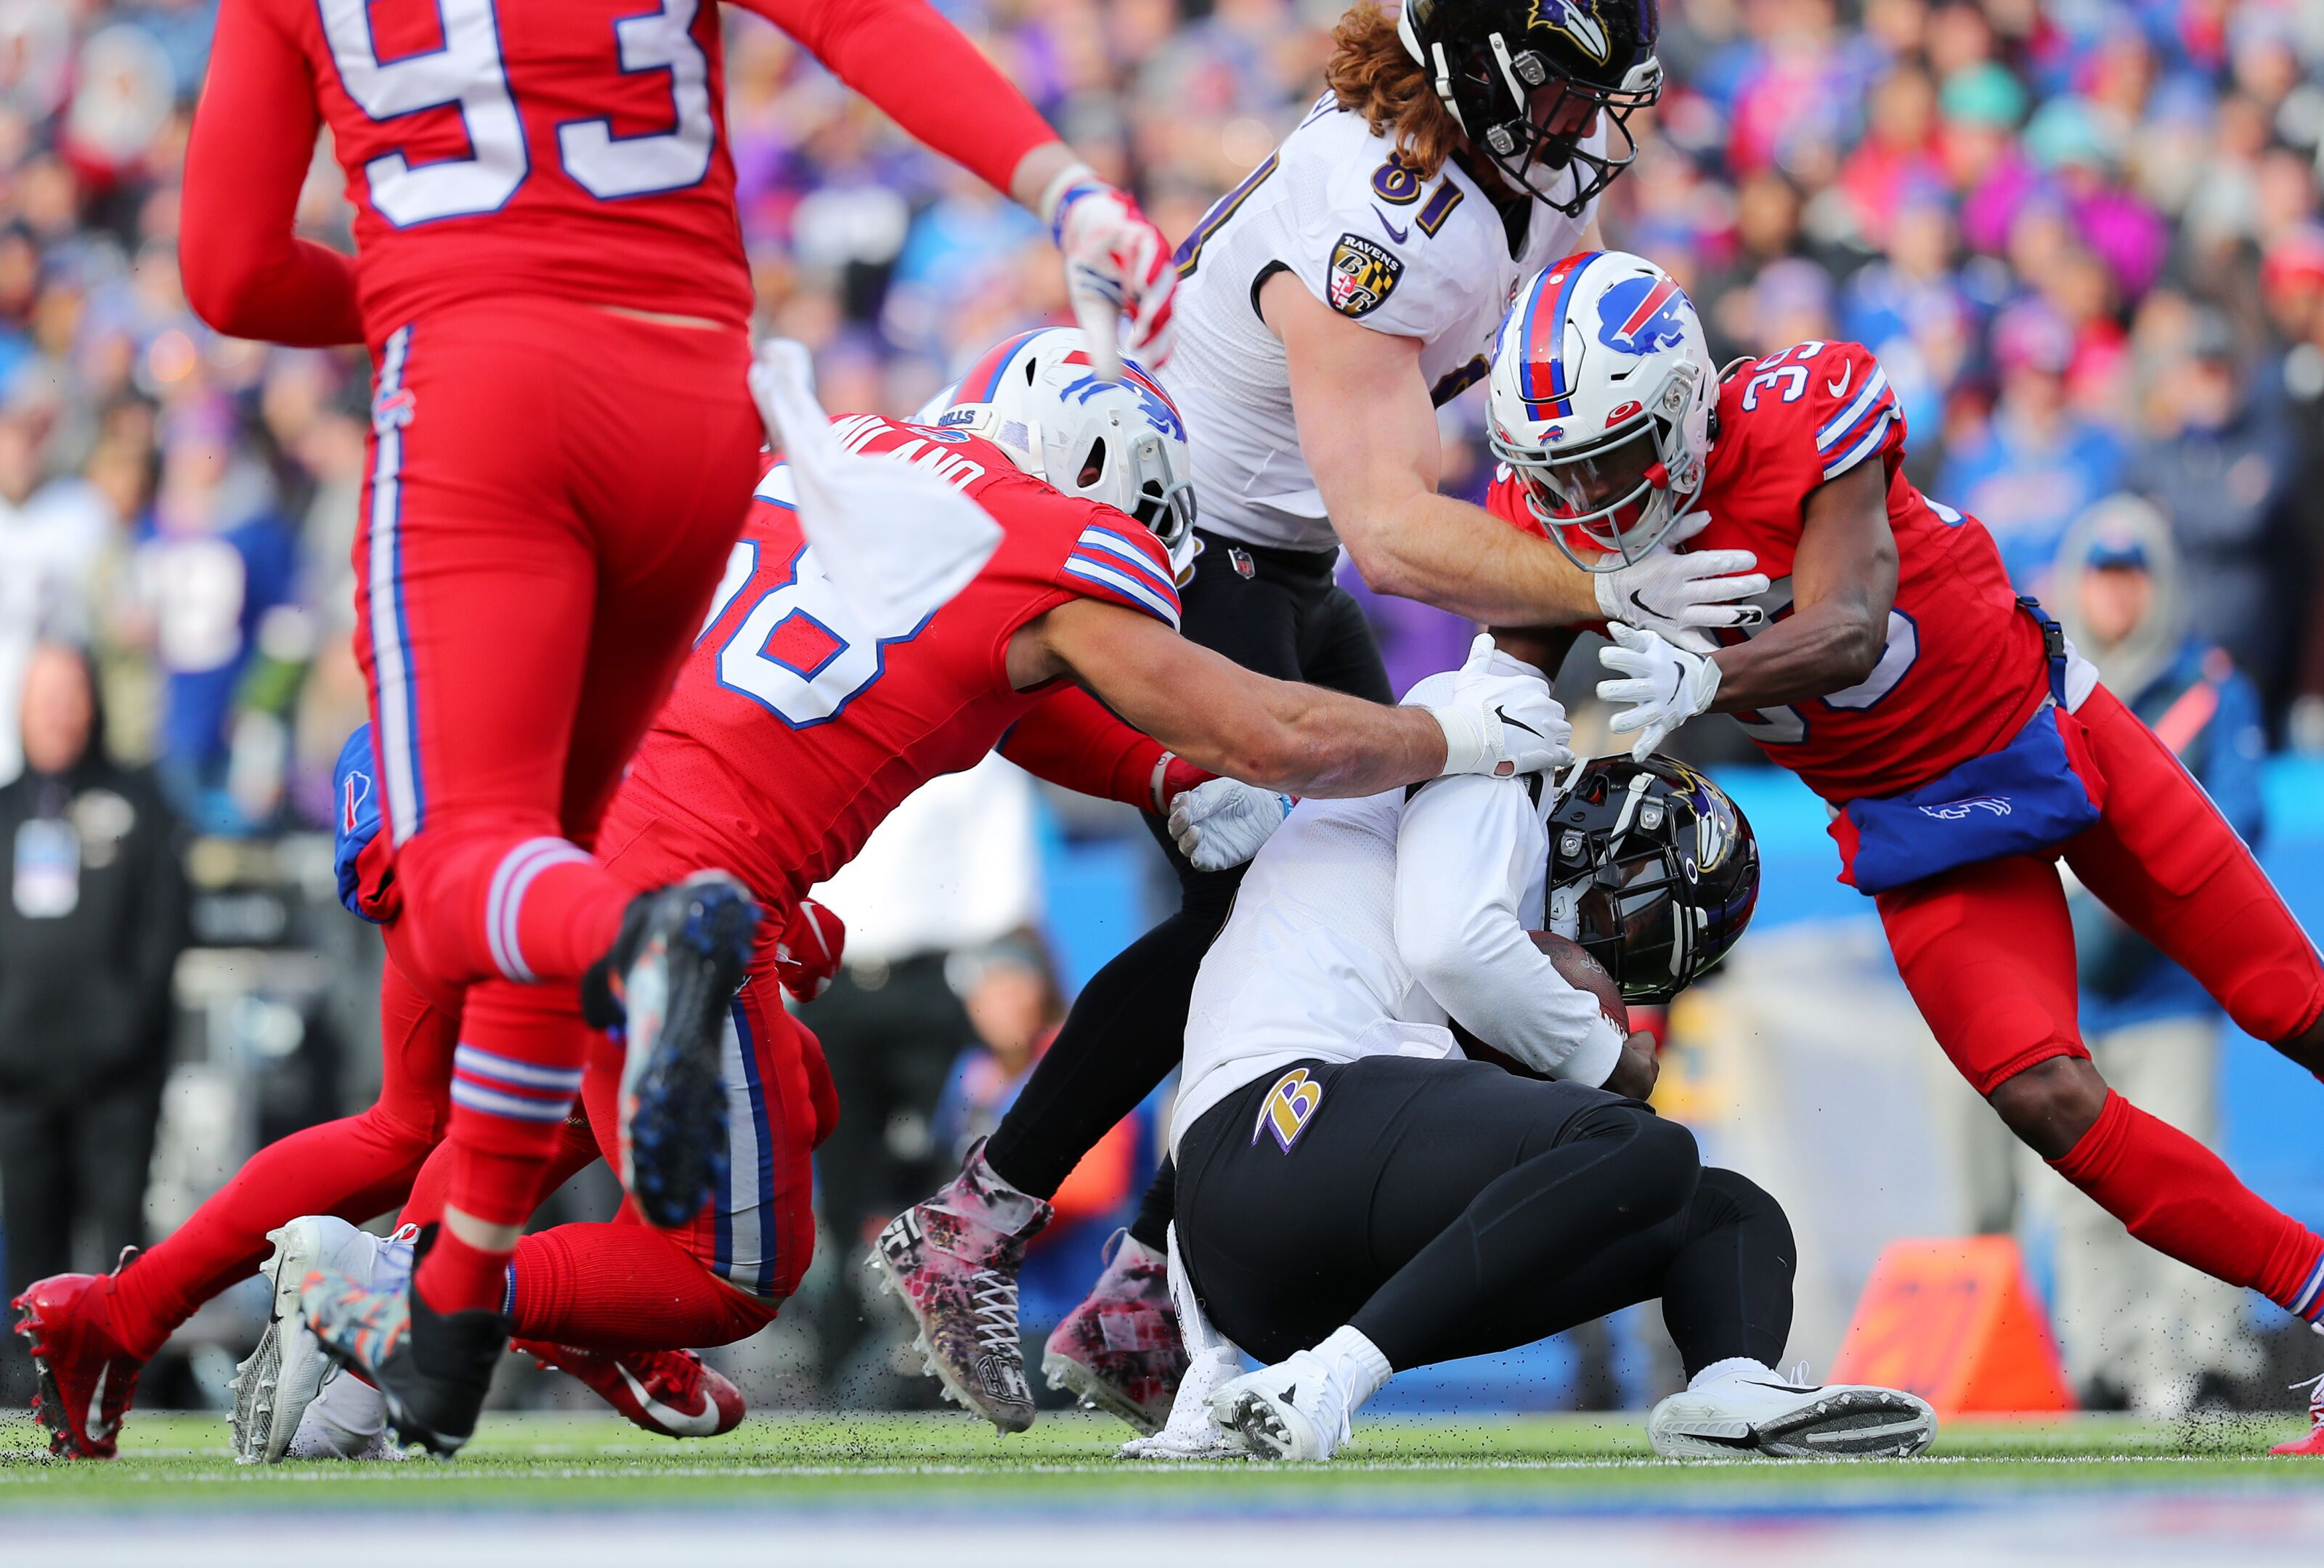 Ravens beat Bills: The good, bad and the ugly